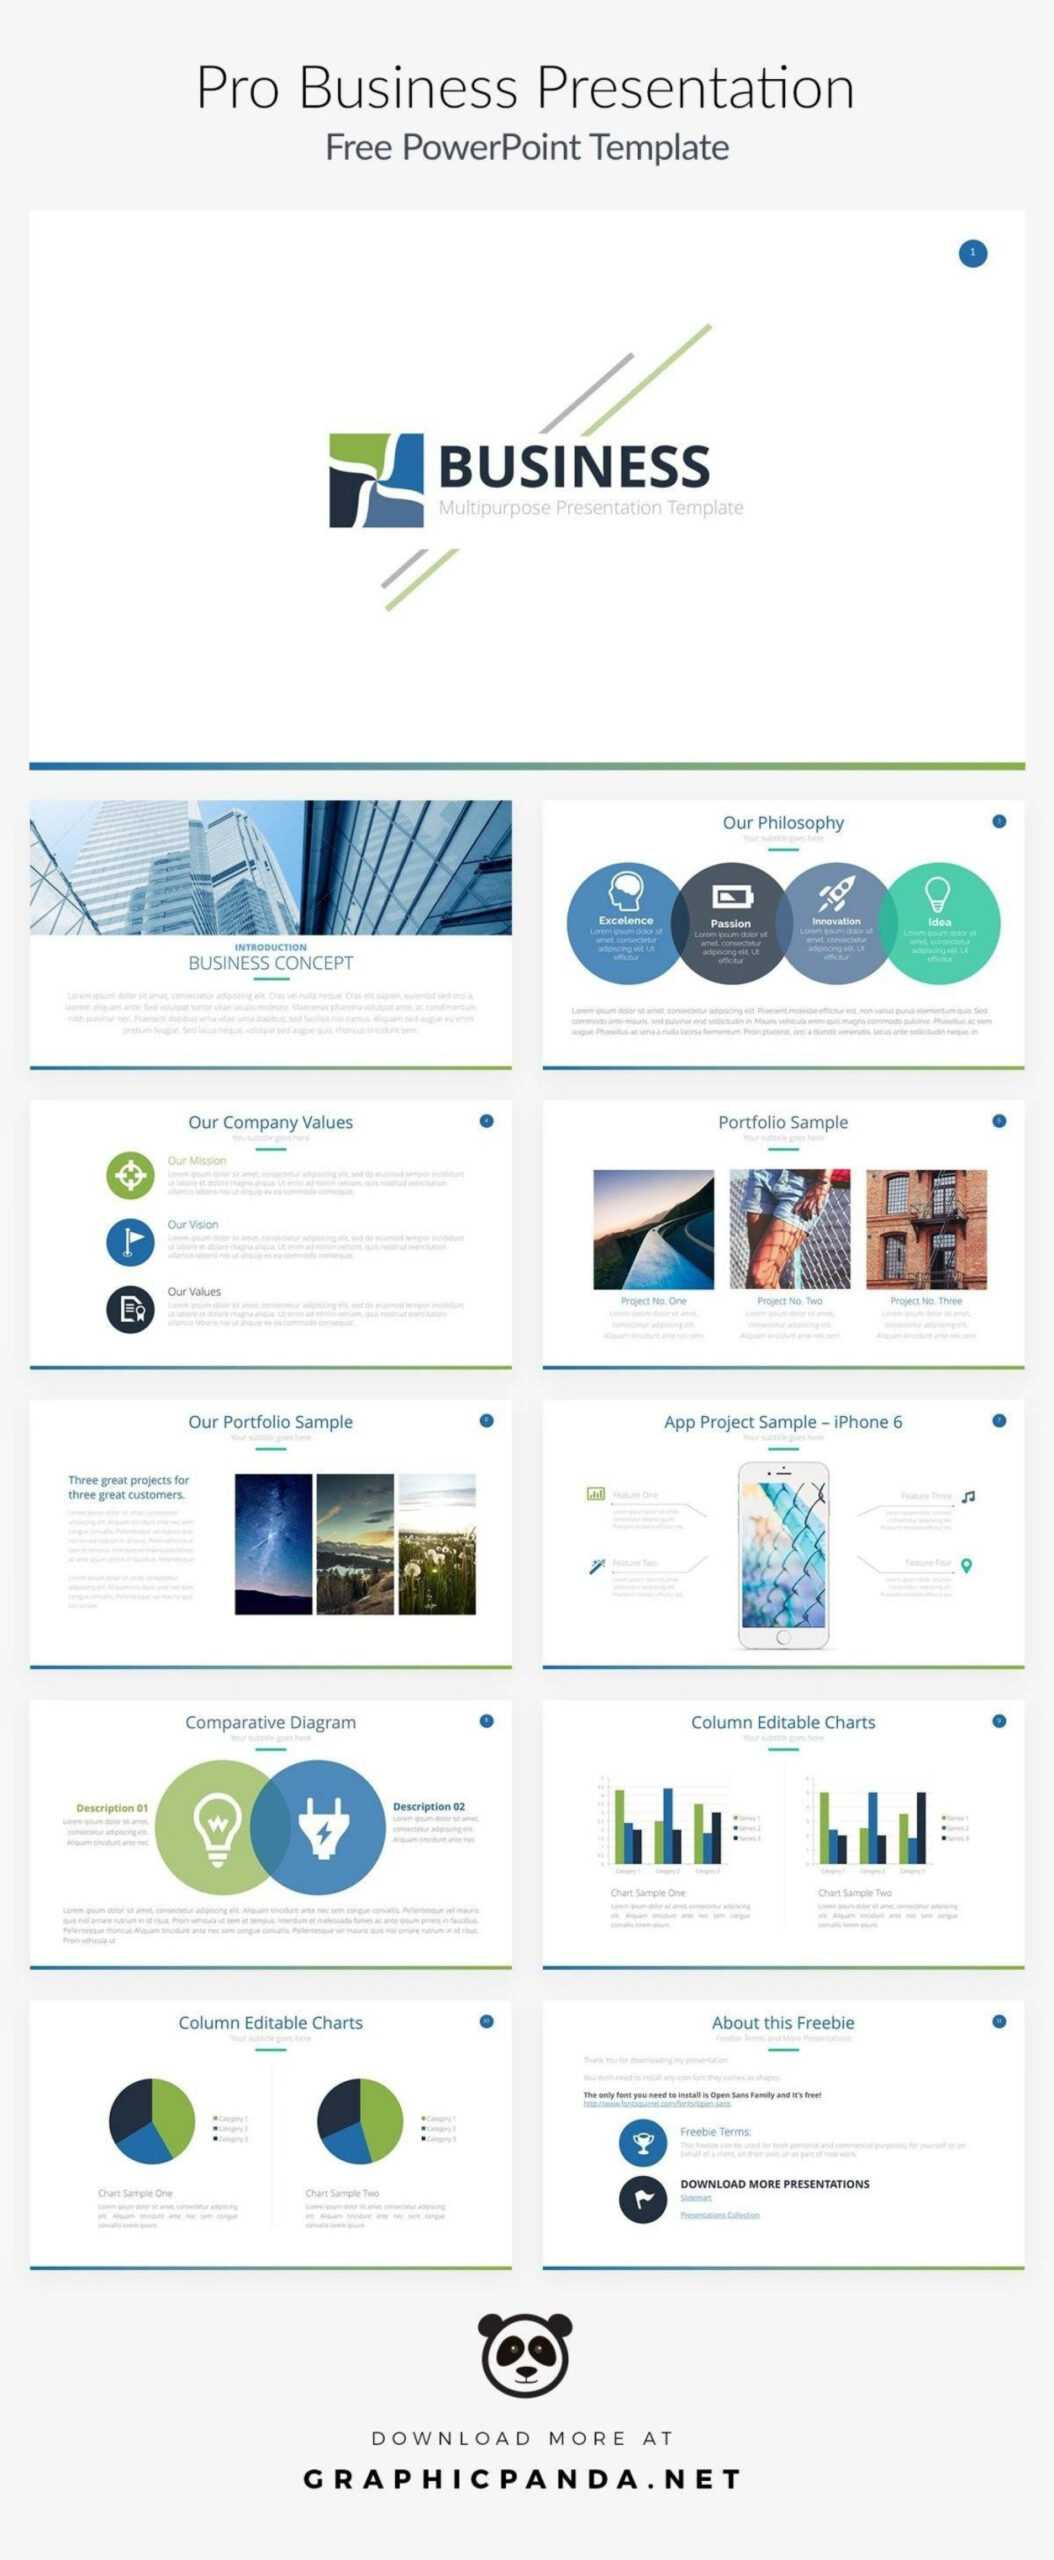 001 Business Card Presentation Template Inspirationalt with regard to Business Card Template Powerpoint Free